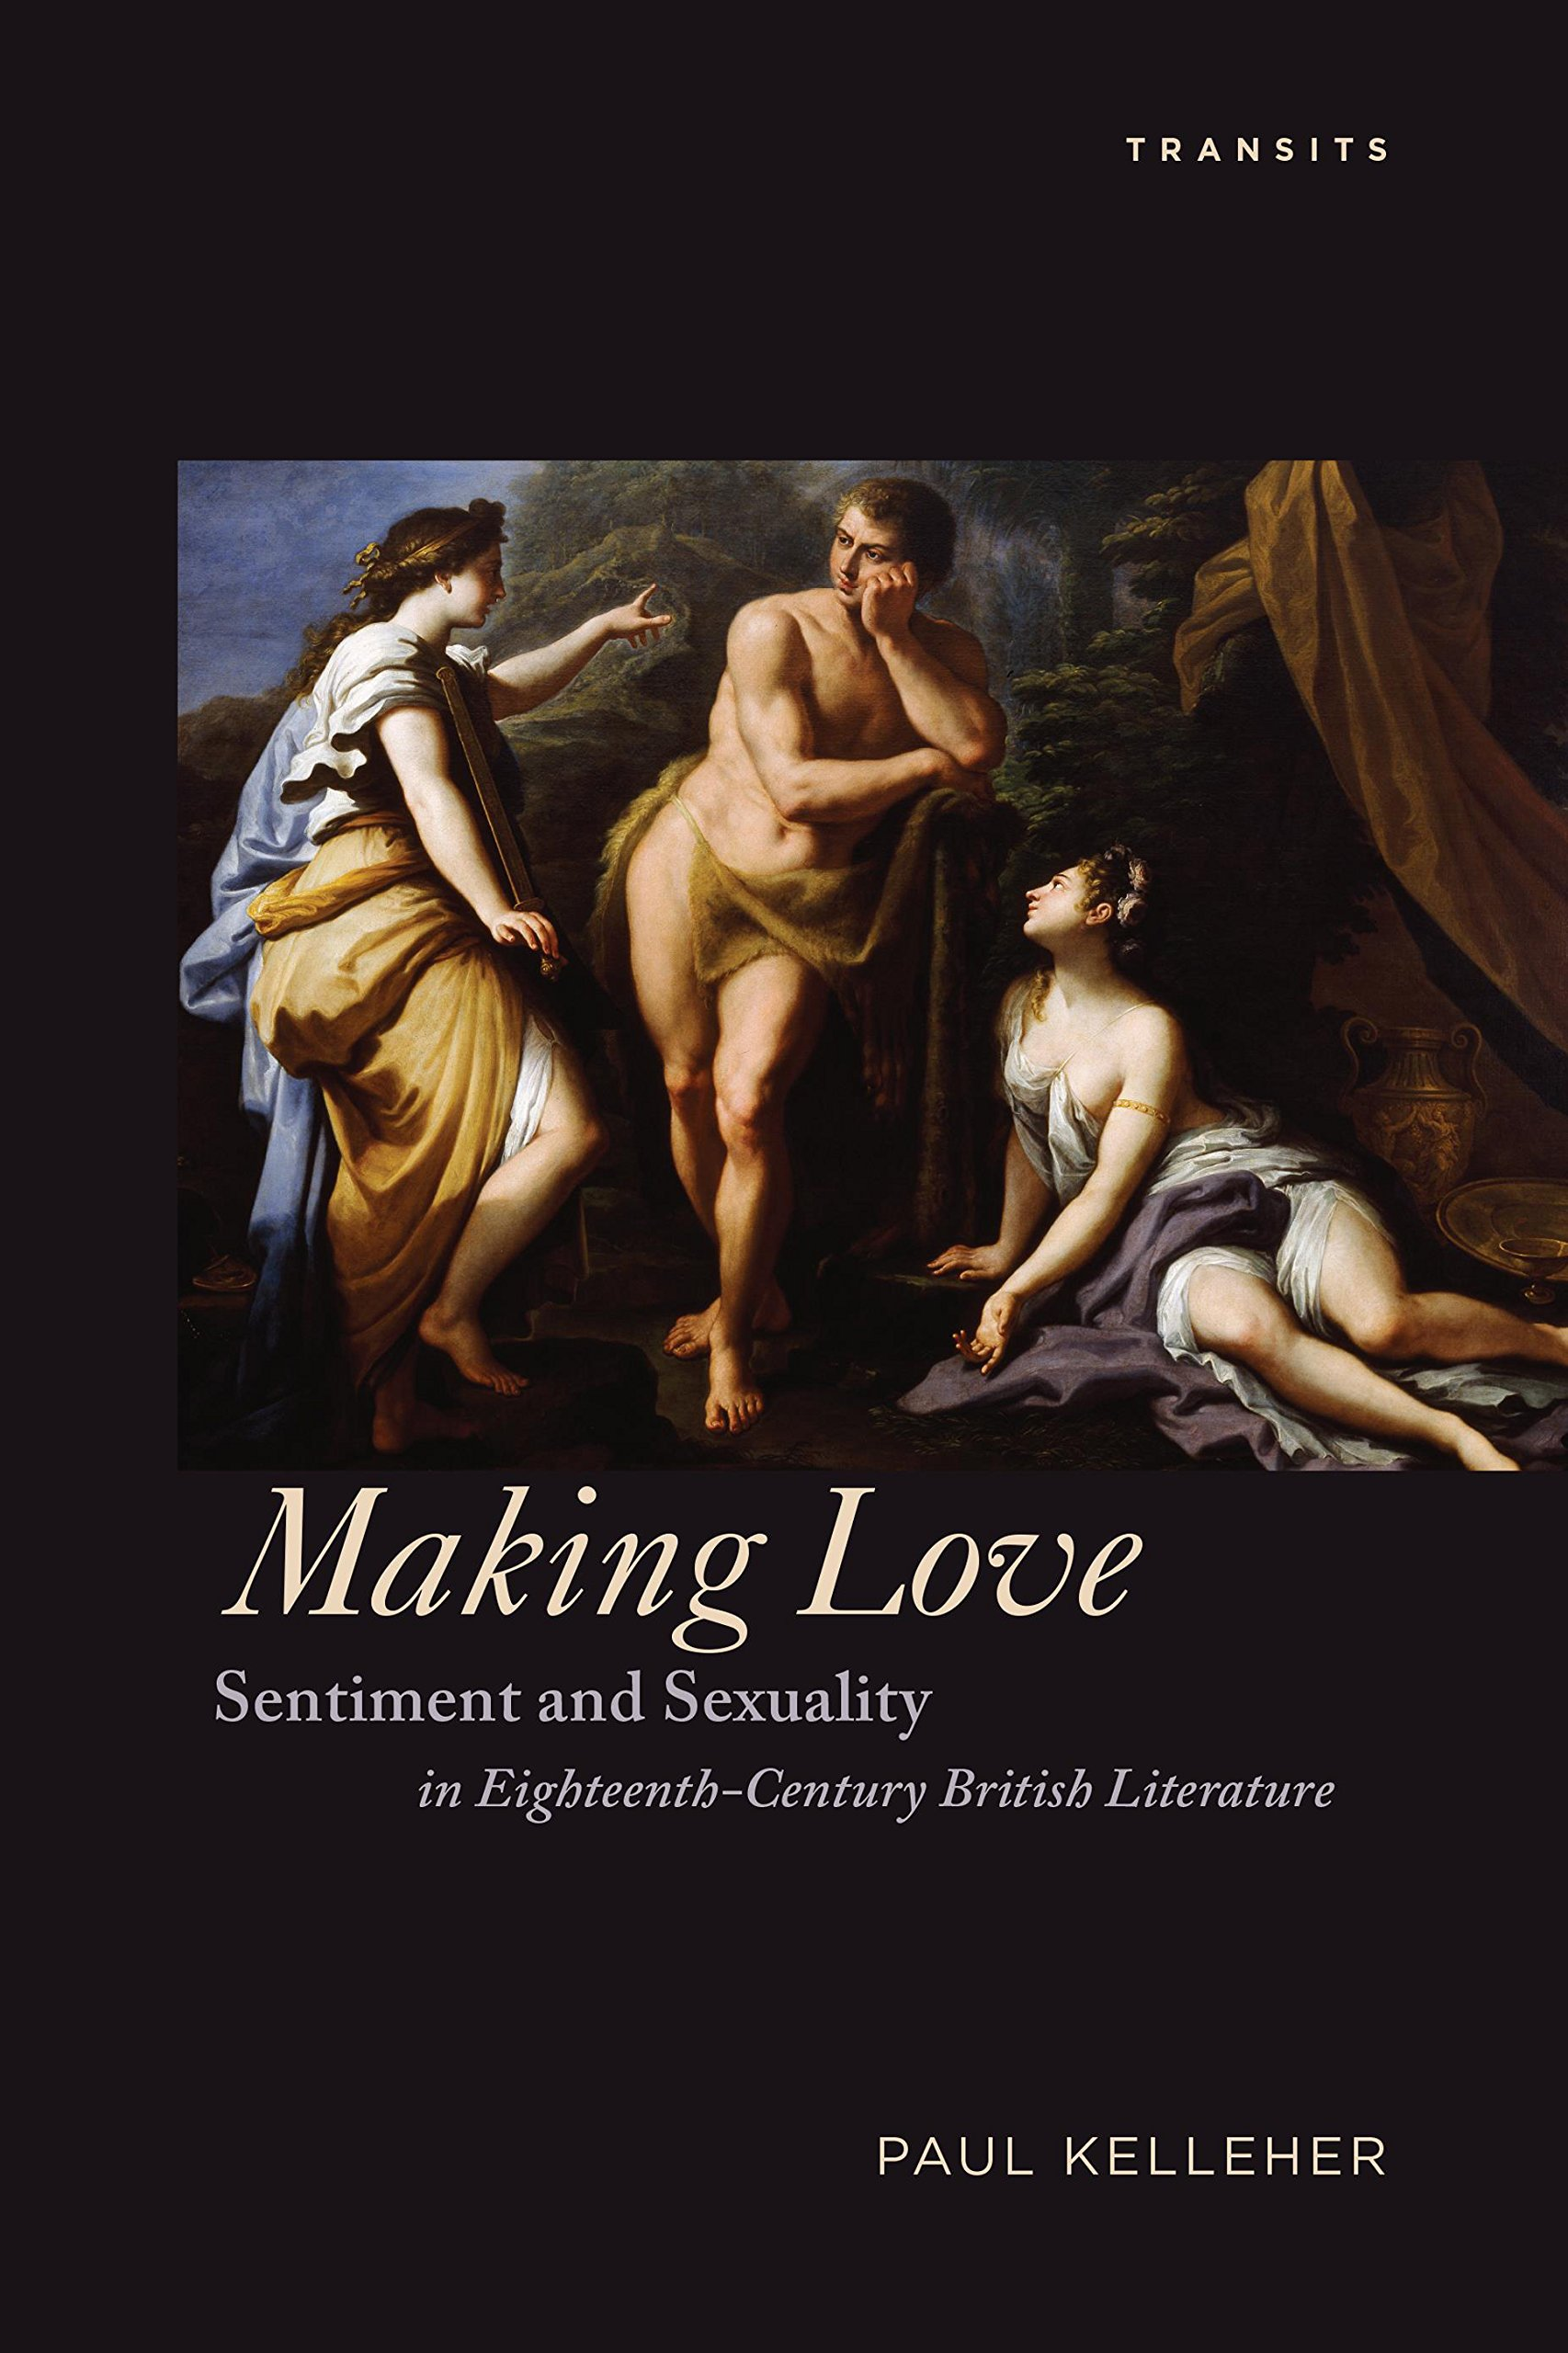 Making Love: Sentiment and Sexuality in Eighteenth-Century British Literature (Transits: Literature, Thought & Culture, 1650–1850) pdf